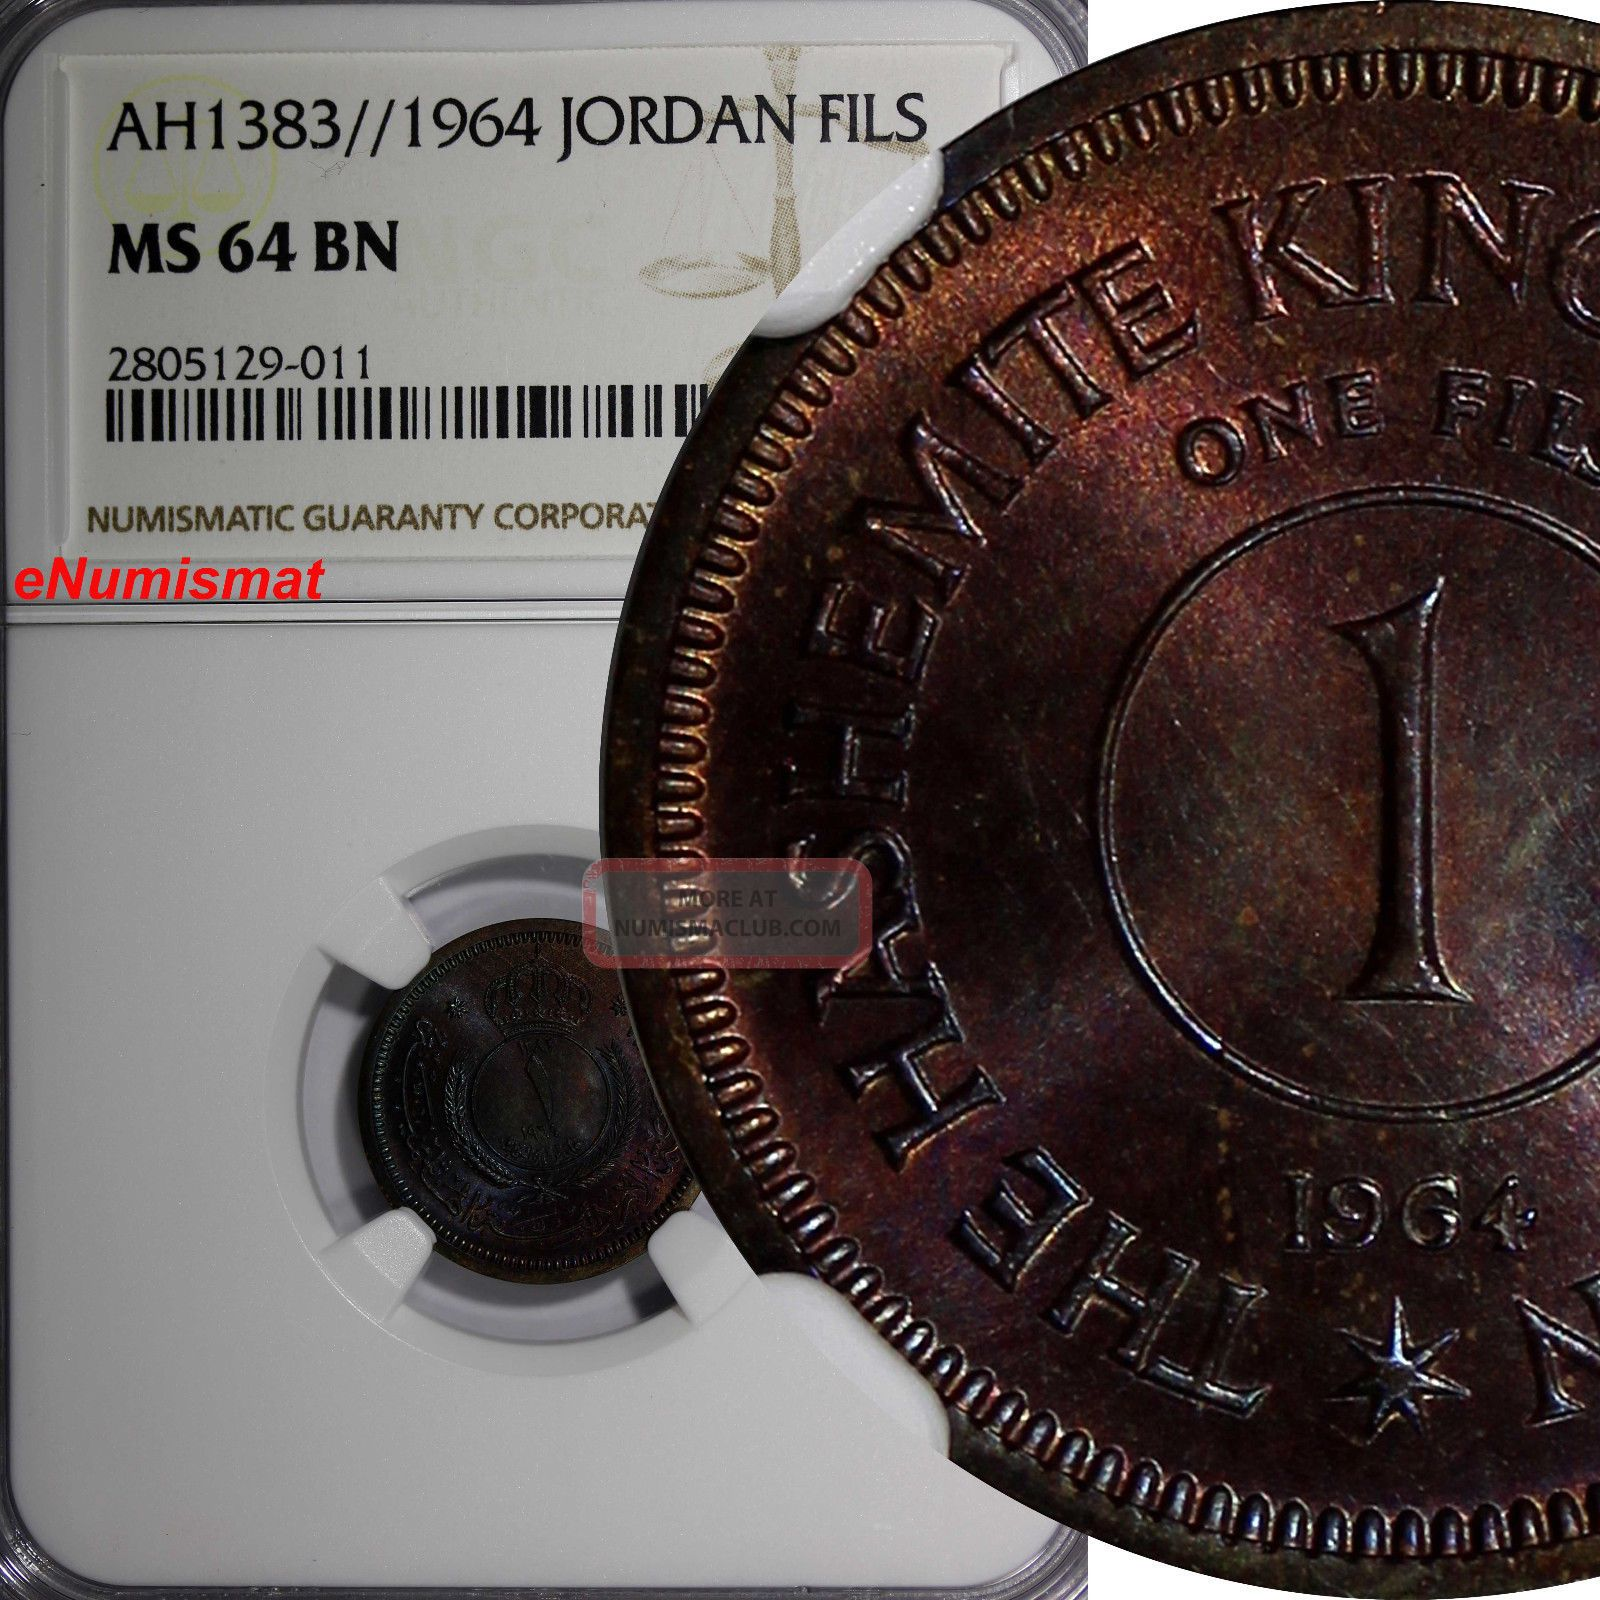 Jordan Hussein Ah1383 (1964) Fils Ngc Ms64 Bn Mintage - 3,  000 Toned Km 8 Middle East photo